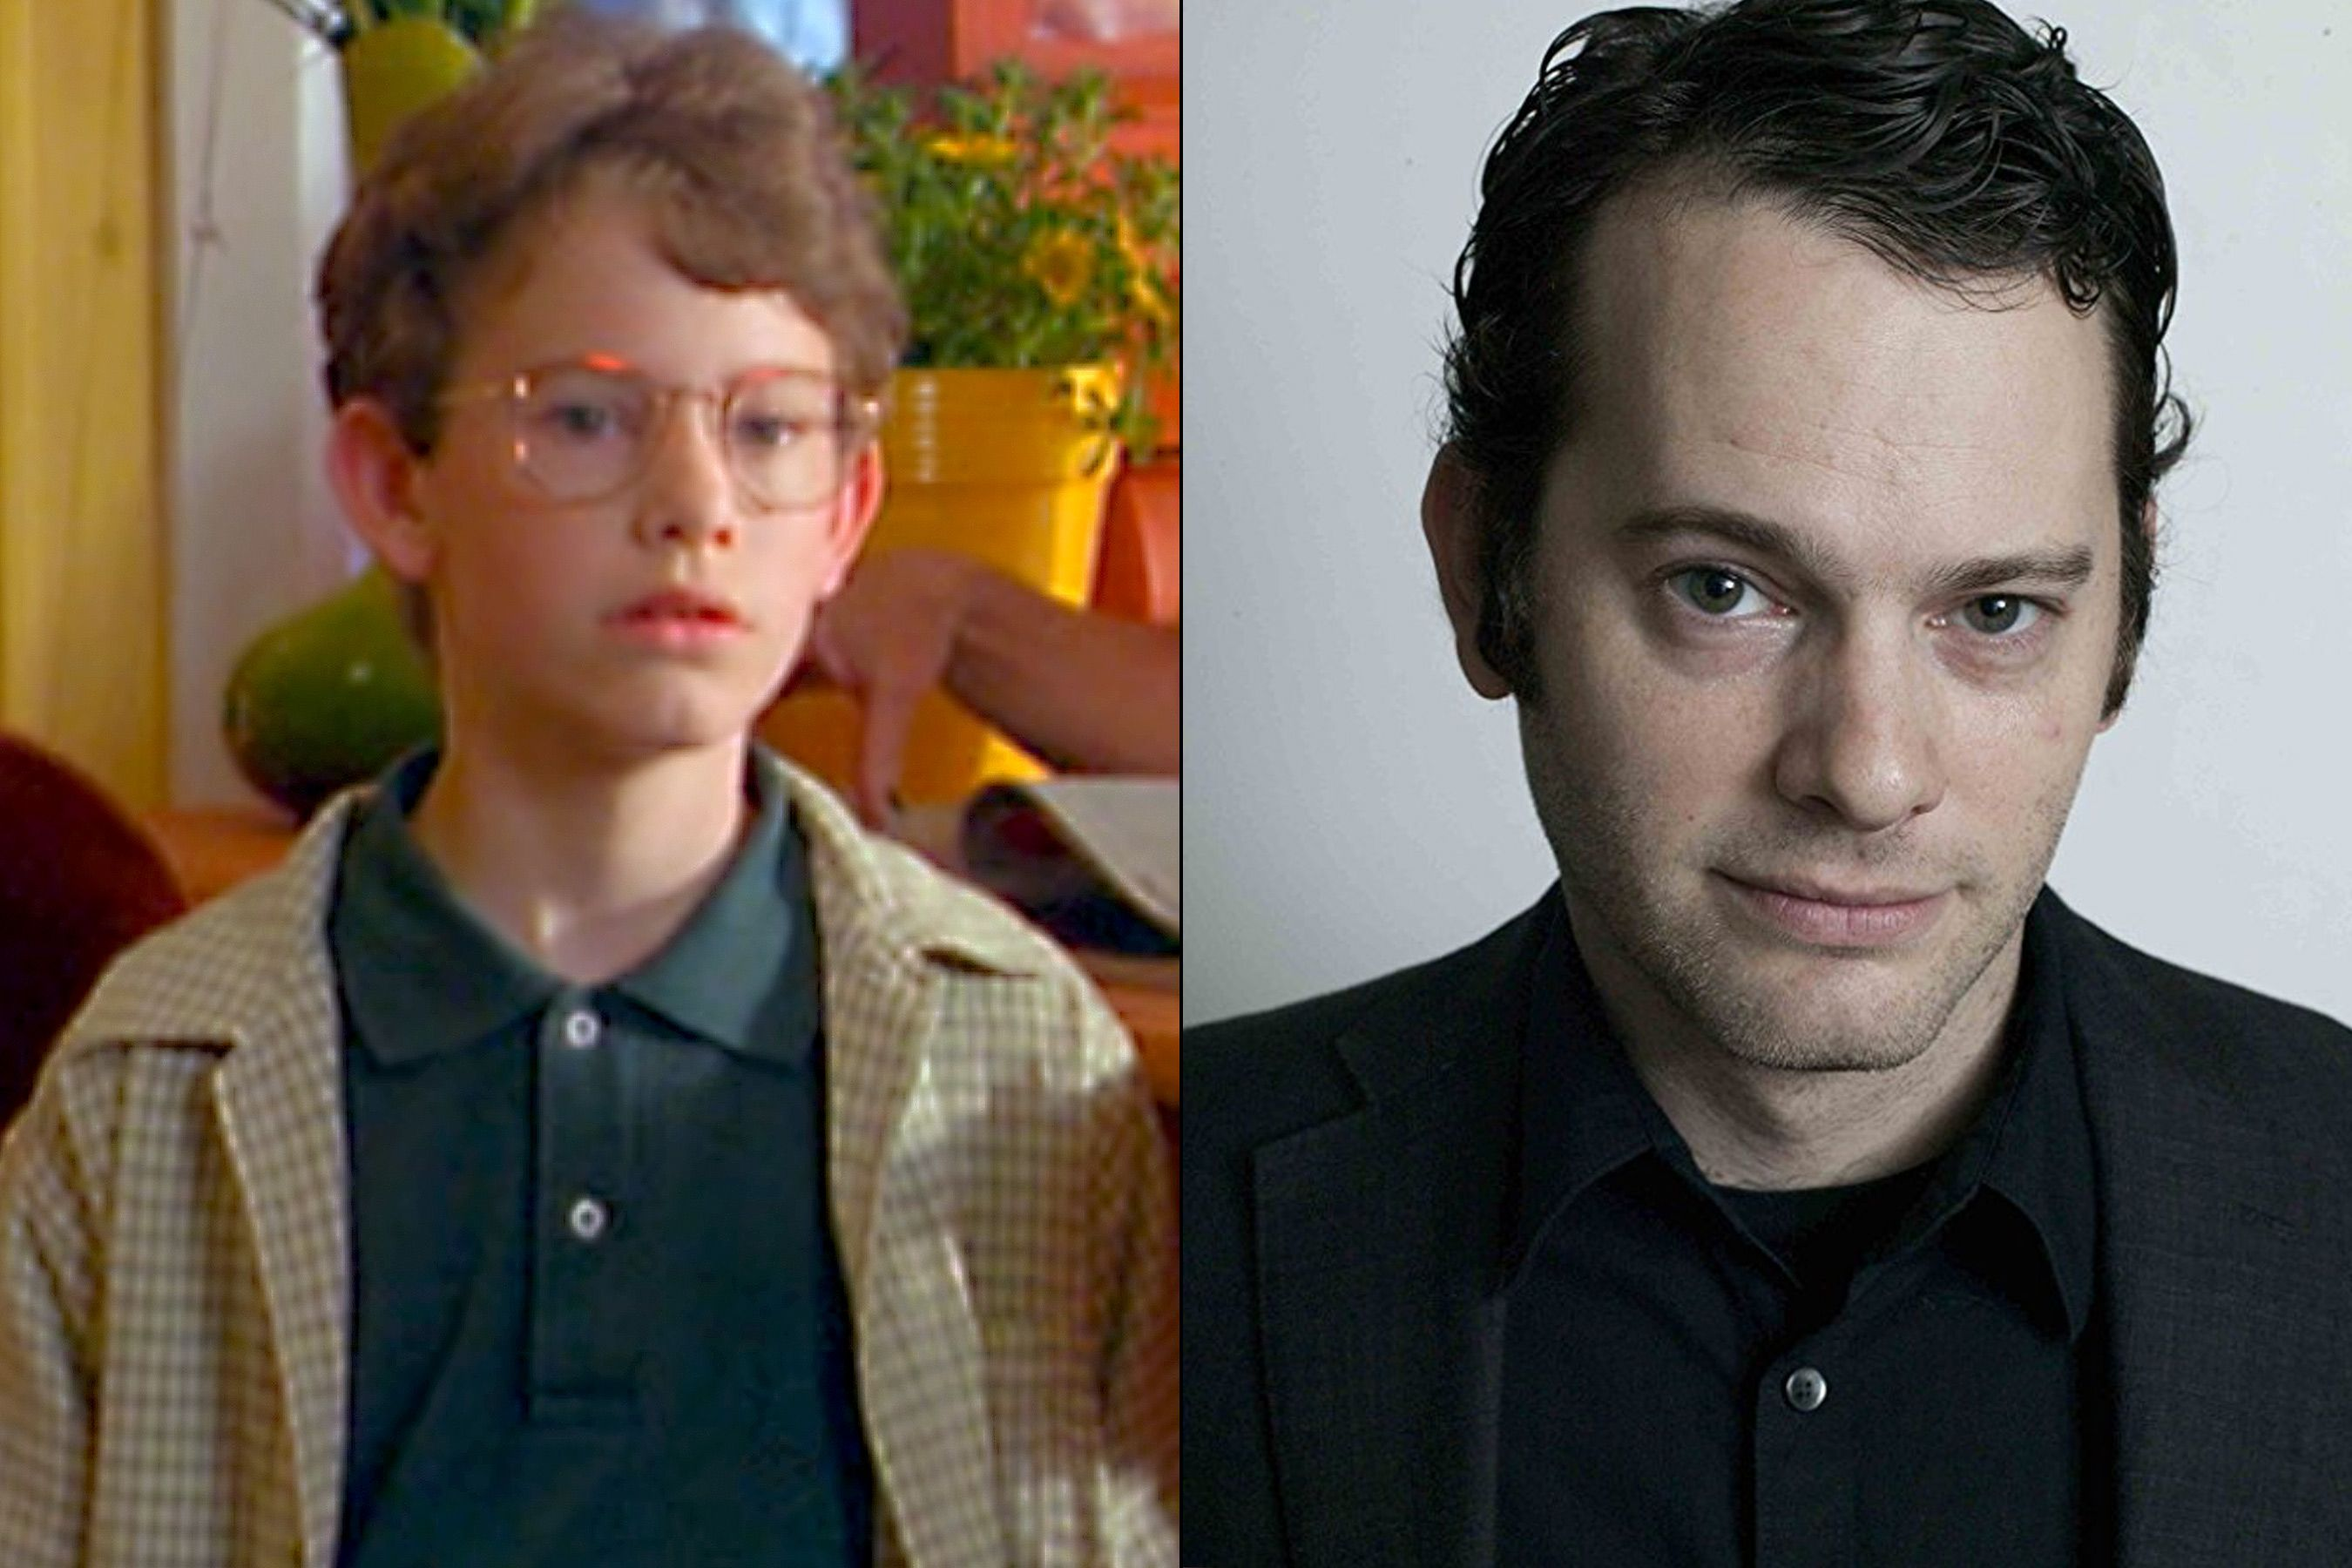 'Halloweentown' Where Are They Now? Child actors